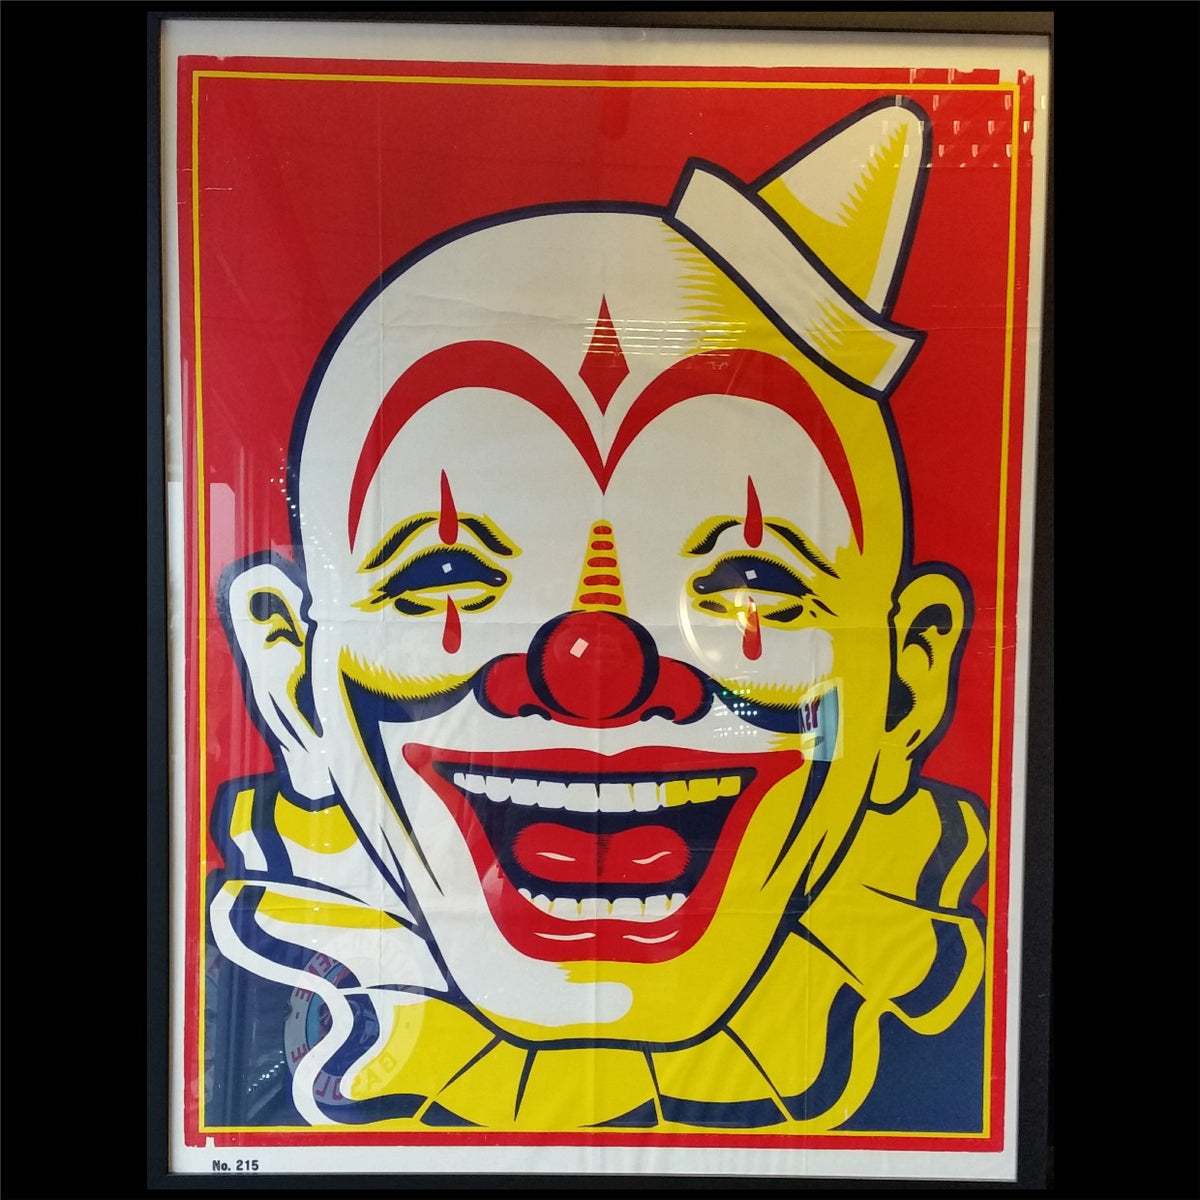 Clyde Beatty and Cole Bros Clown Poster